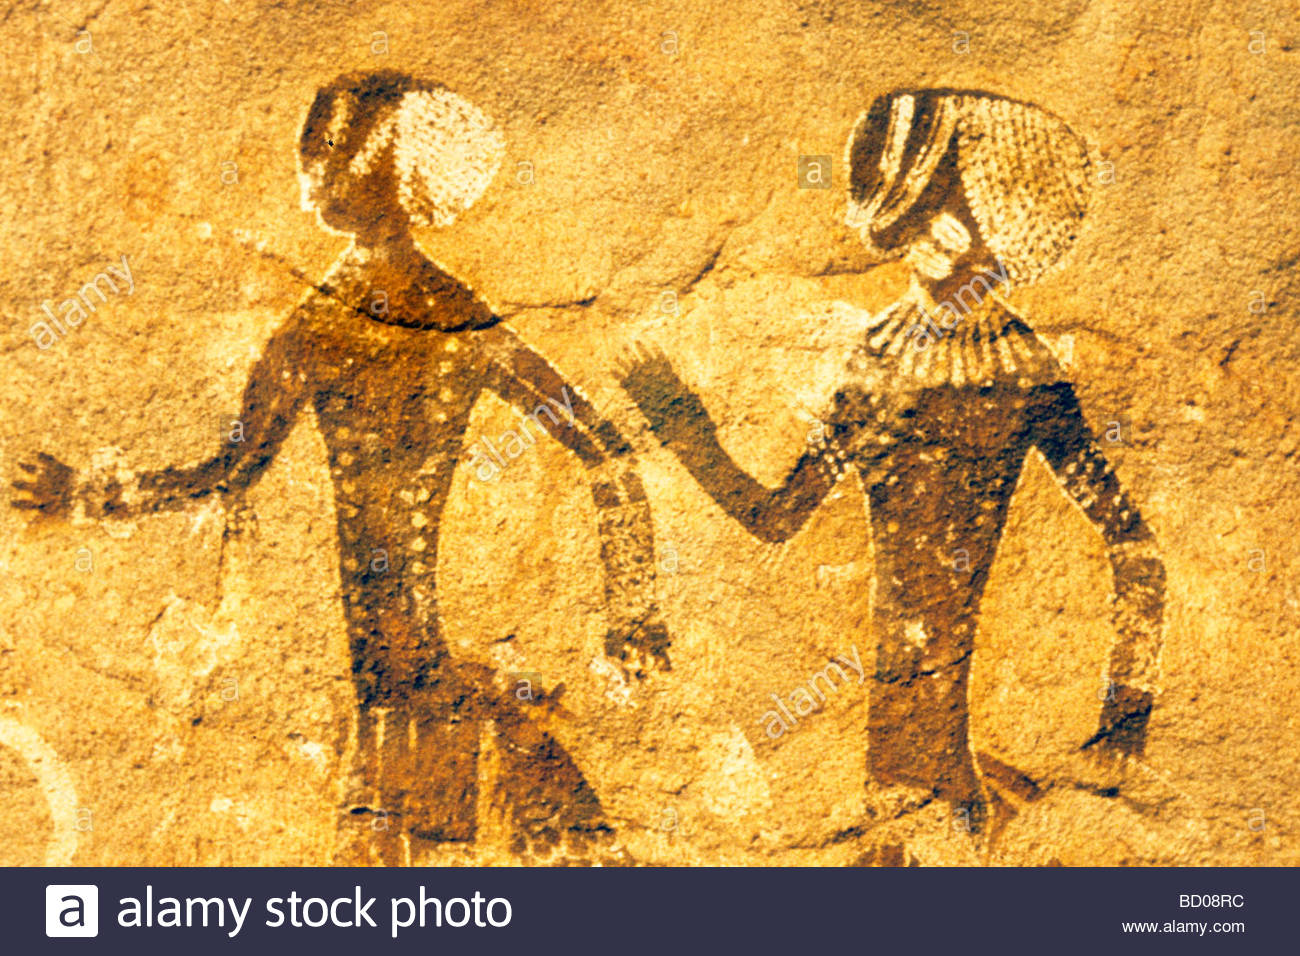 the rock art and paintings of africa African rock art the continent's true history protecting cave paintings can restore africa's pride in its history may 1st 2008 | nairobi.